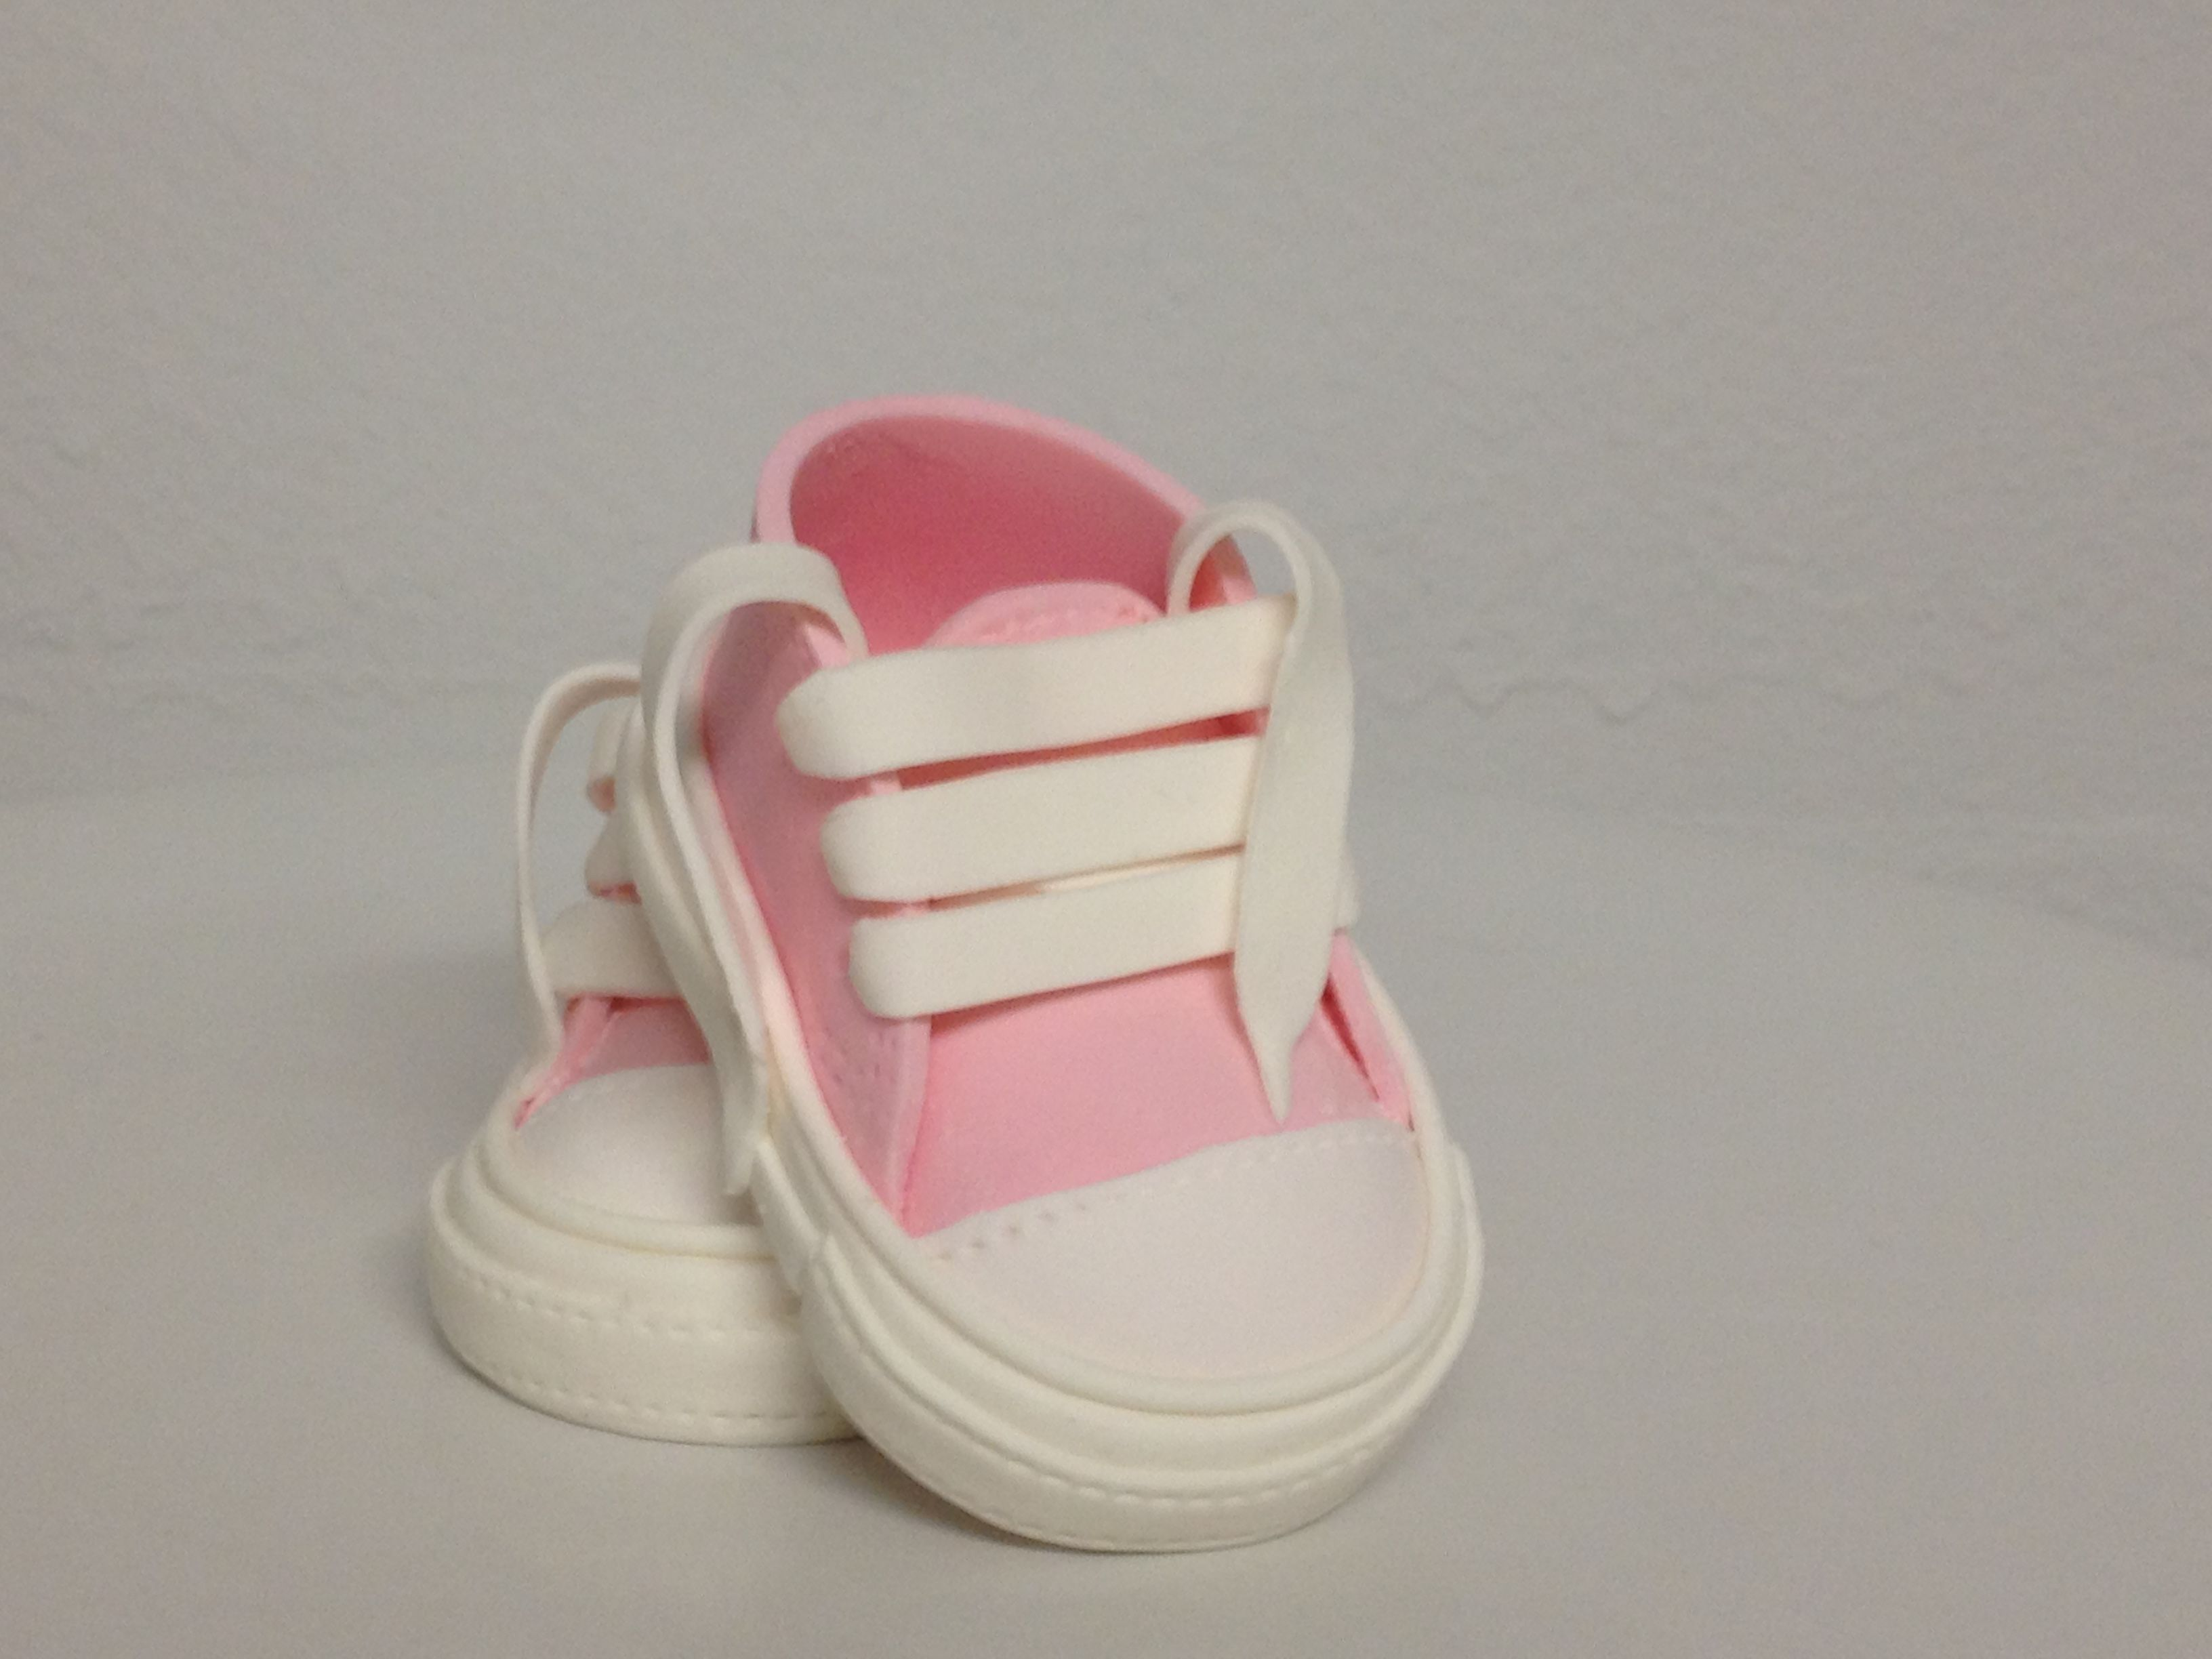 baby girl tennis shoes, sugar baby shoes, sugar baby tennis shoes, gum paste baby tennis shoes , gum paste pink shoes, gum paste pink baby shoes,cake topper, Zapatitos de bebe hechos de azucar